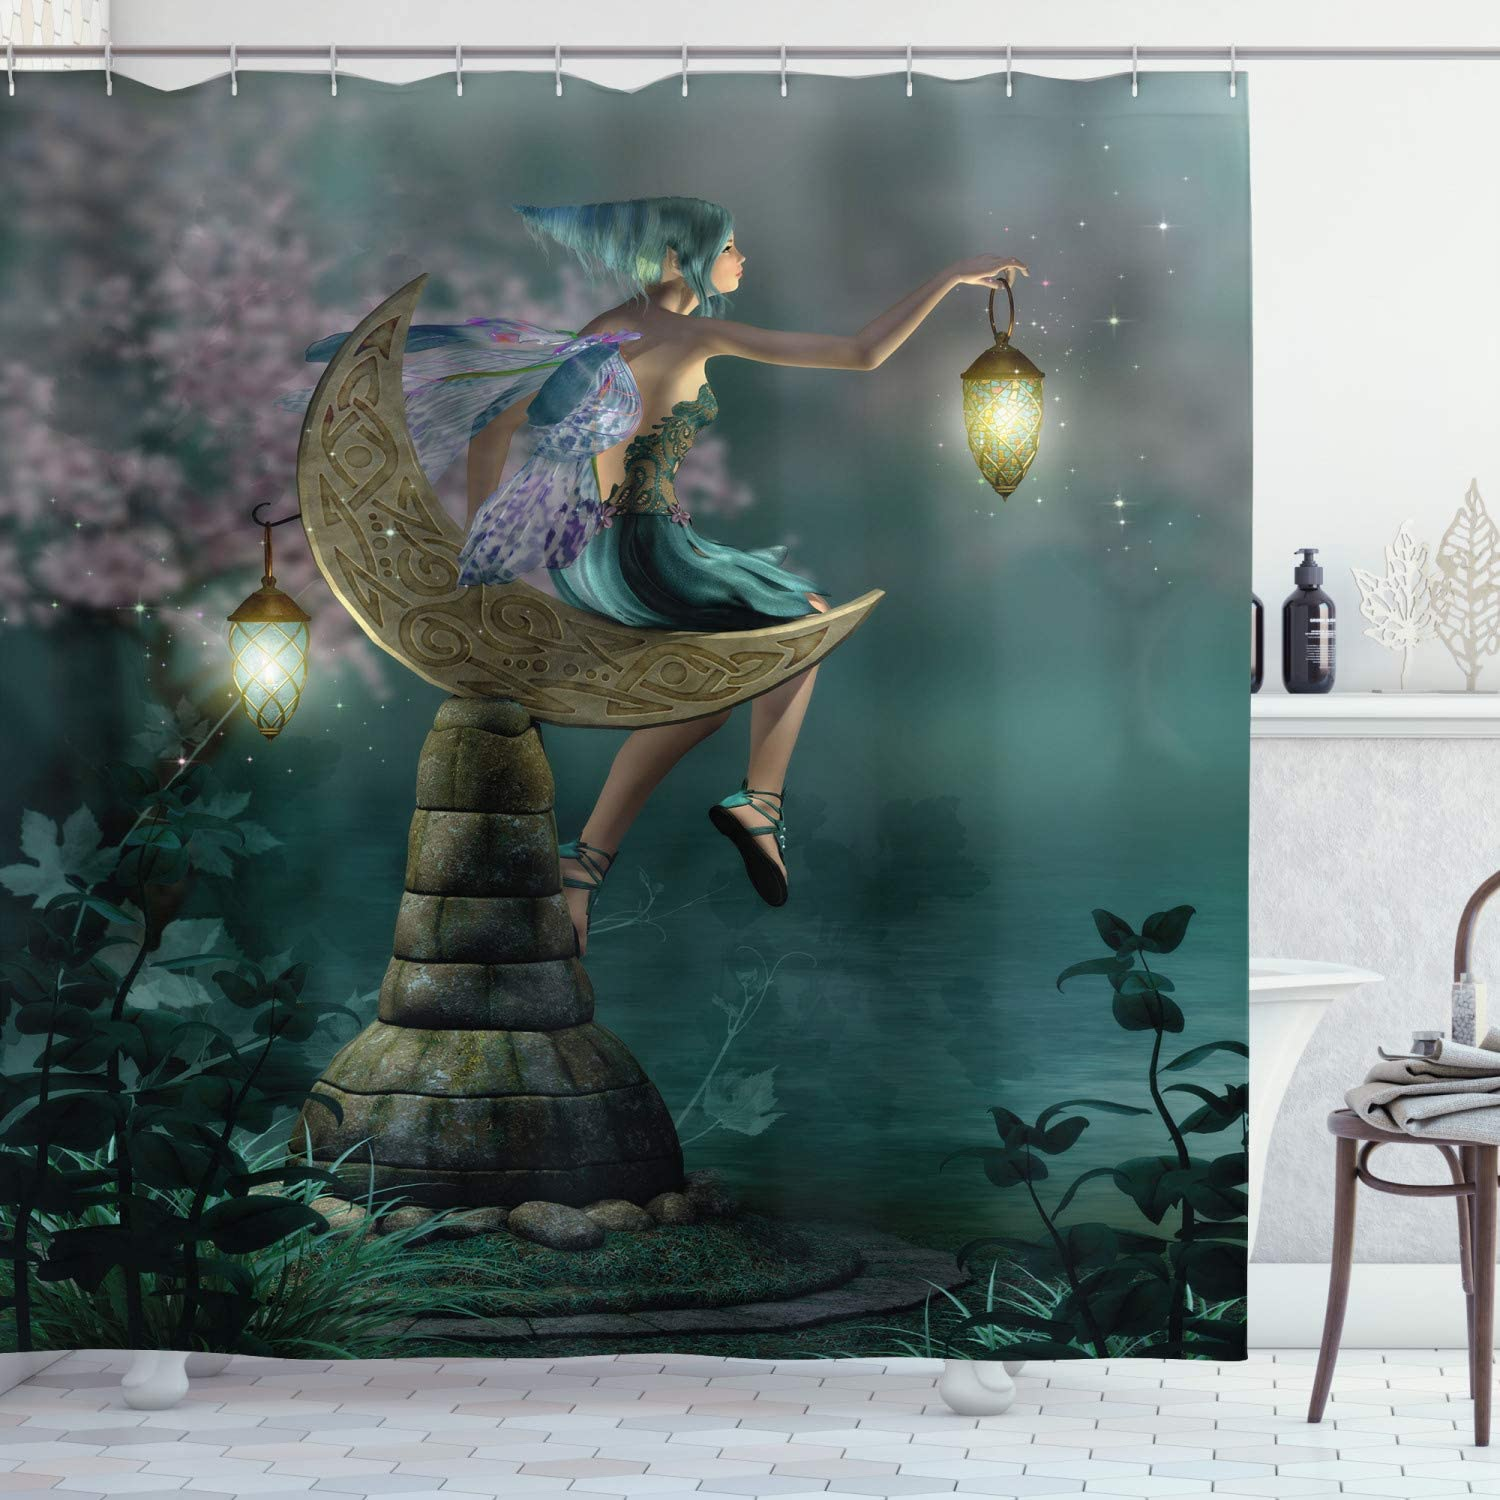 Ambesonne Fantasy Shower Curtain, Little Pixie with Lantern Sitting Moon Stone Fairytale Myth Artwork, Cloth Fabric Bathroom Decor Set with Hooks, 70